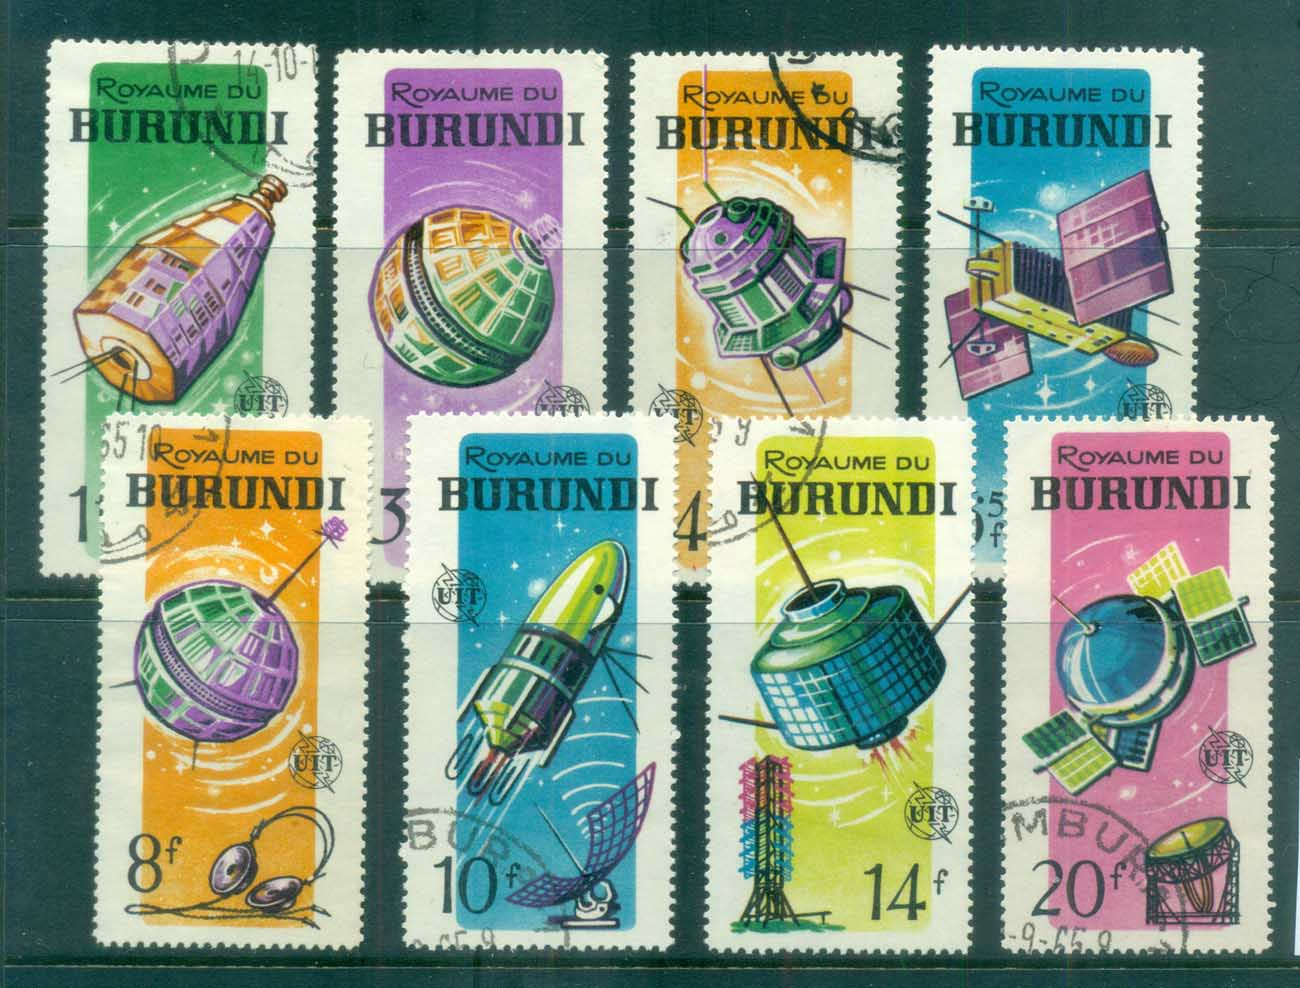 Burundi 1965 ITU Cent., Space Satellites CTO